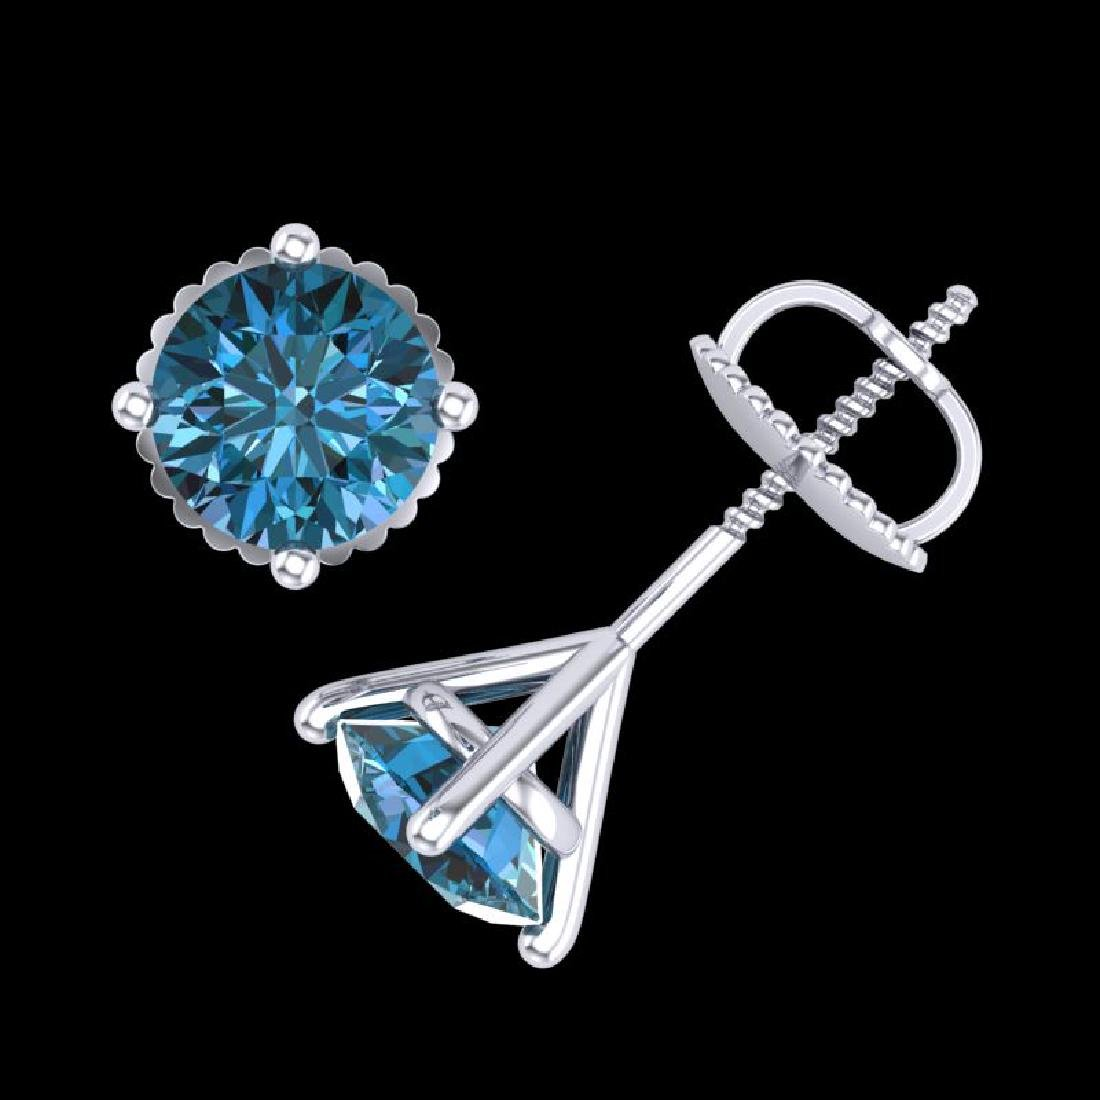 1.5 CTW Fancy Intense Blue Diamond Art Deco Stud - 3